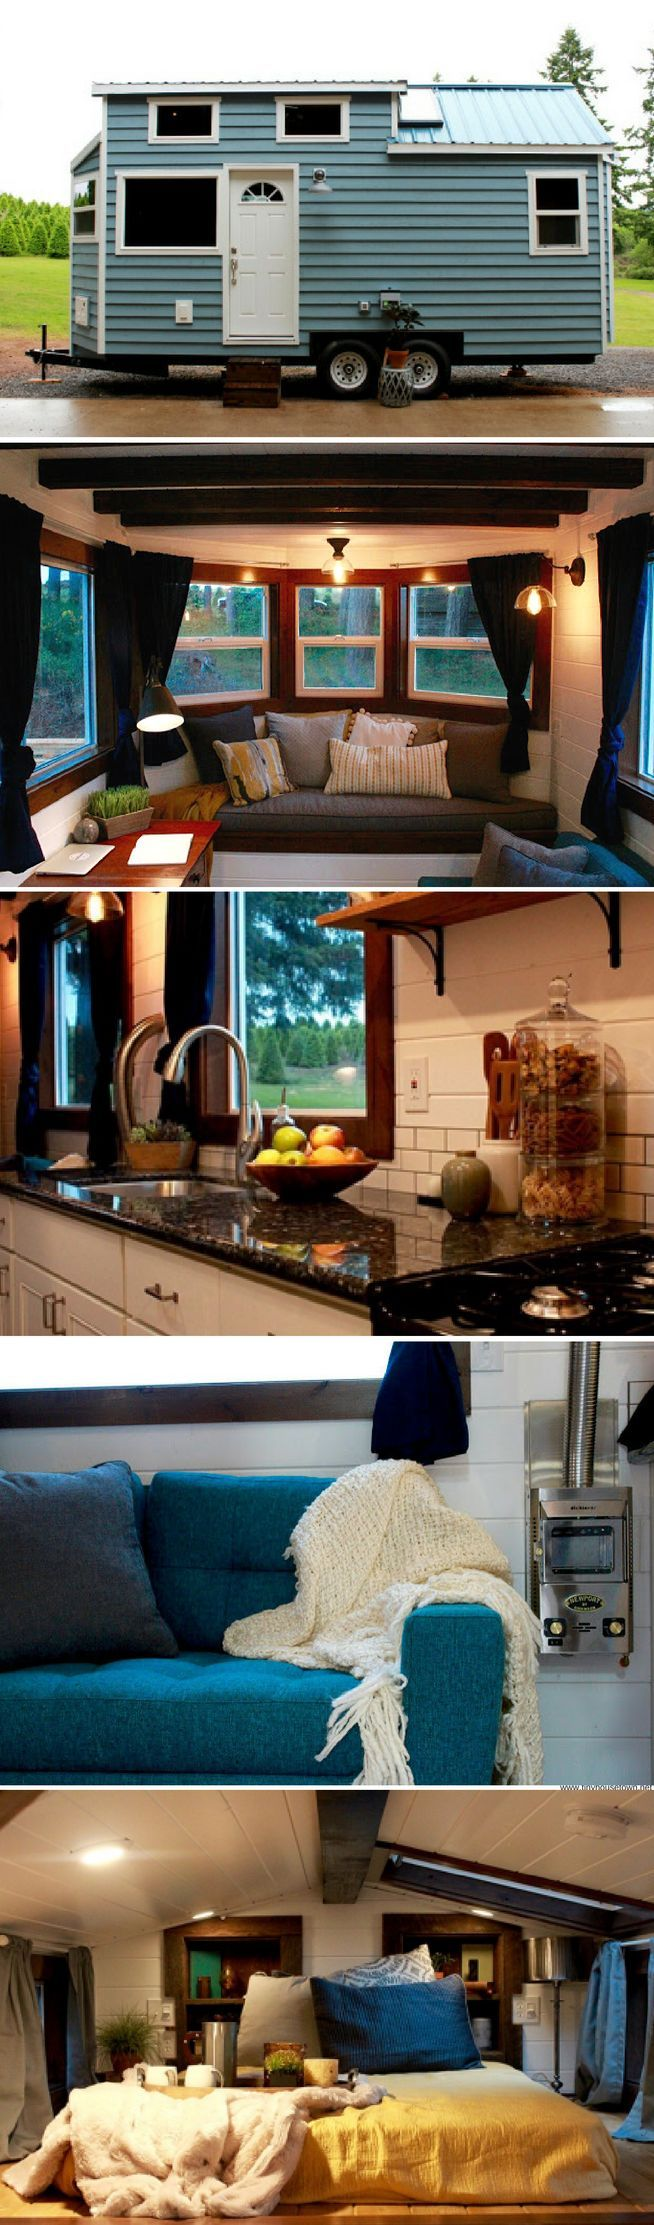 The Sapphire tiny house from Tiny Heirloom